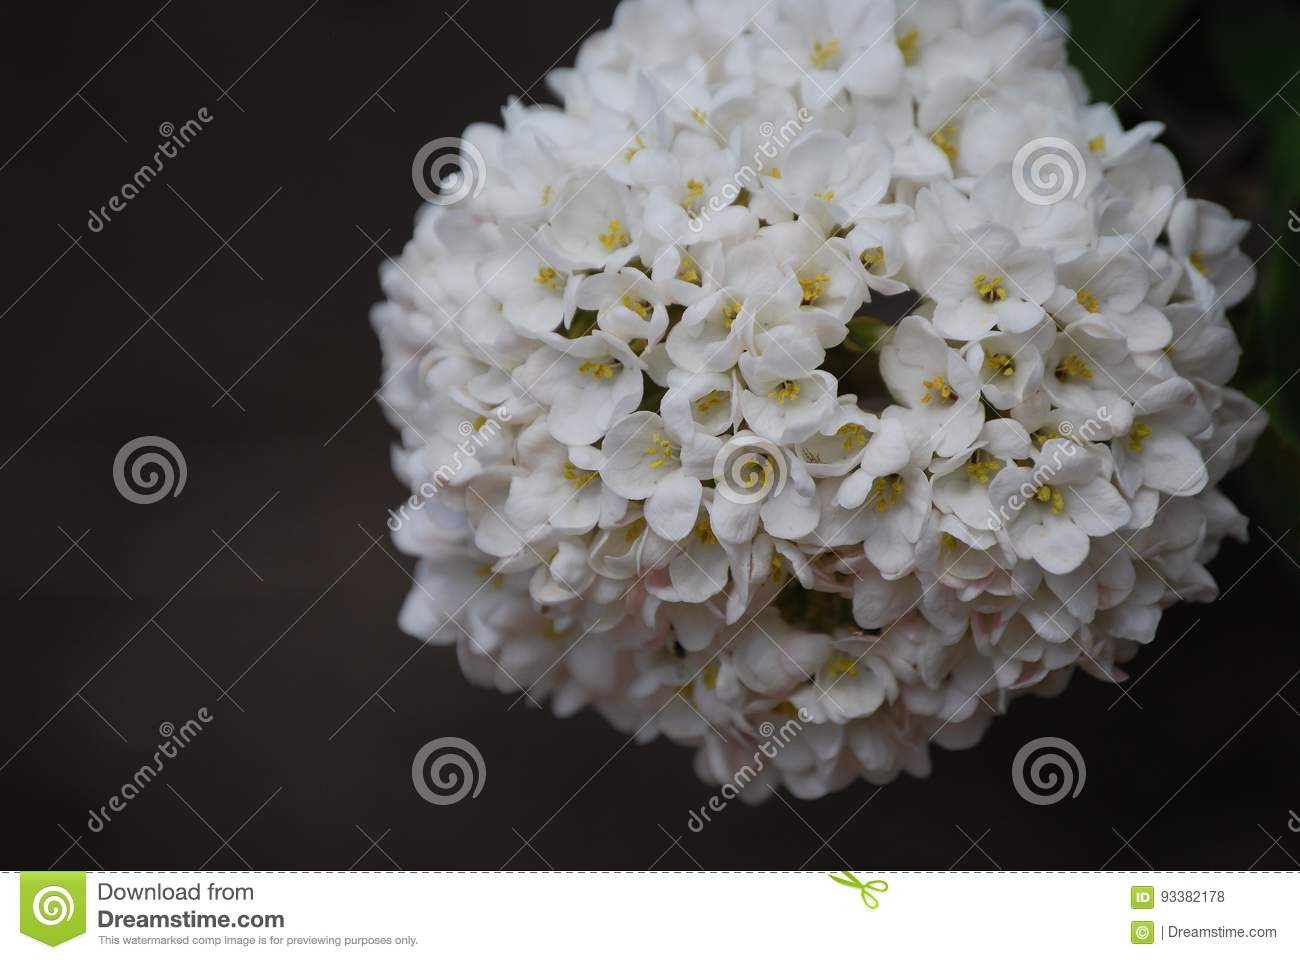 Chinese snowball flower stock photo image of flowers 93382178 download chinese snowball flower stock photo image of flowers 93382178 mightylinksfo